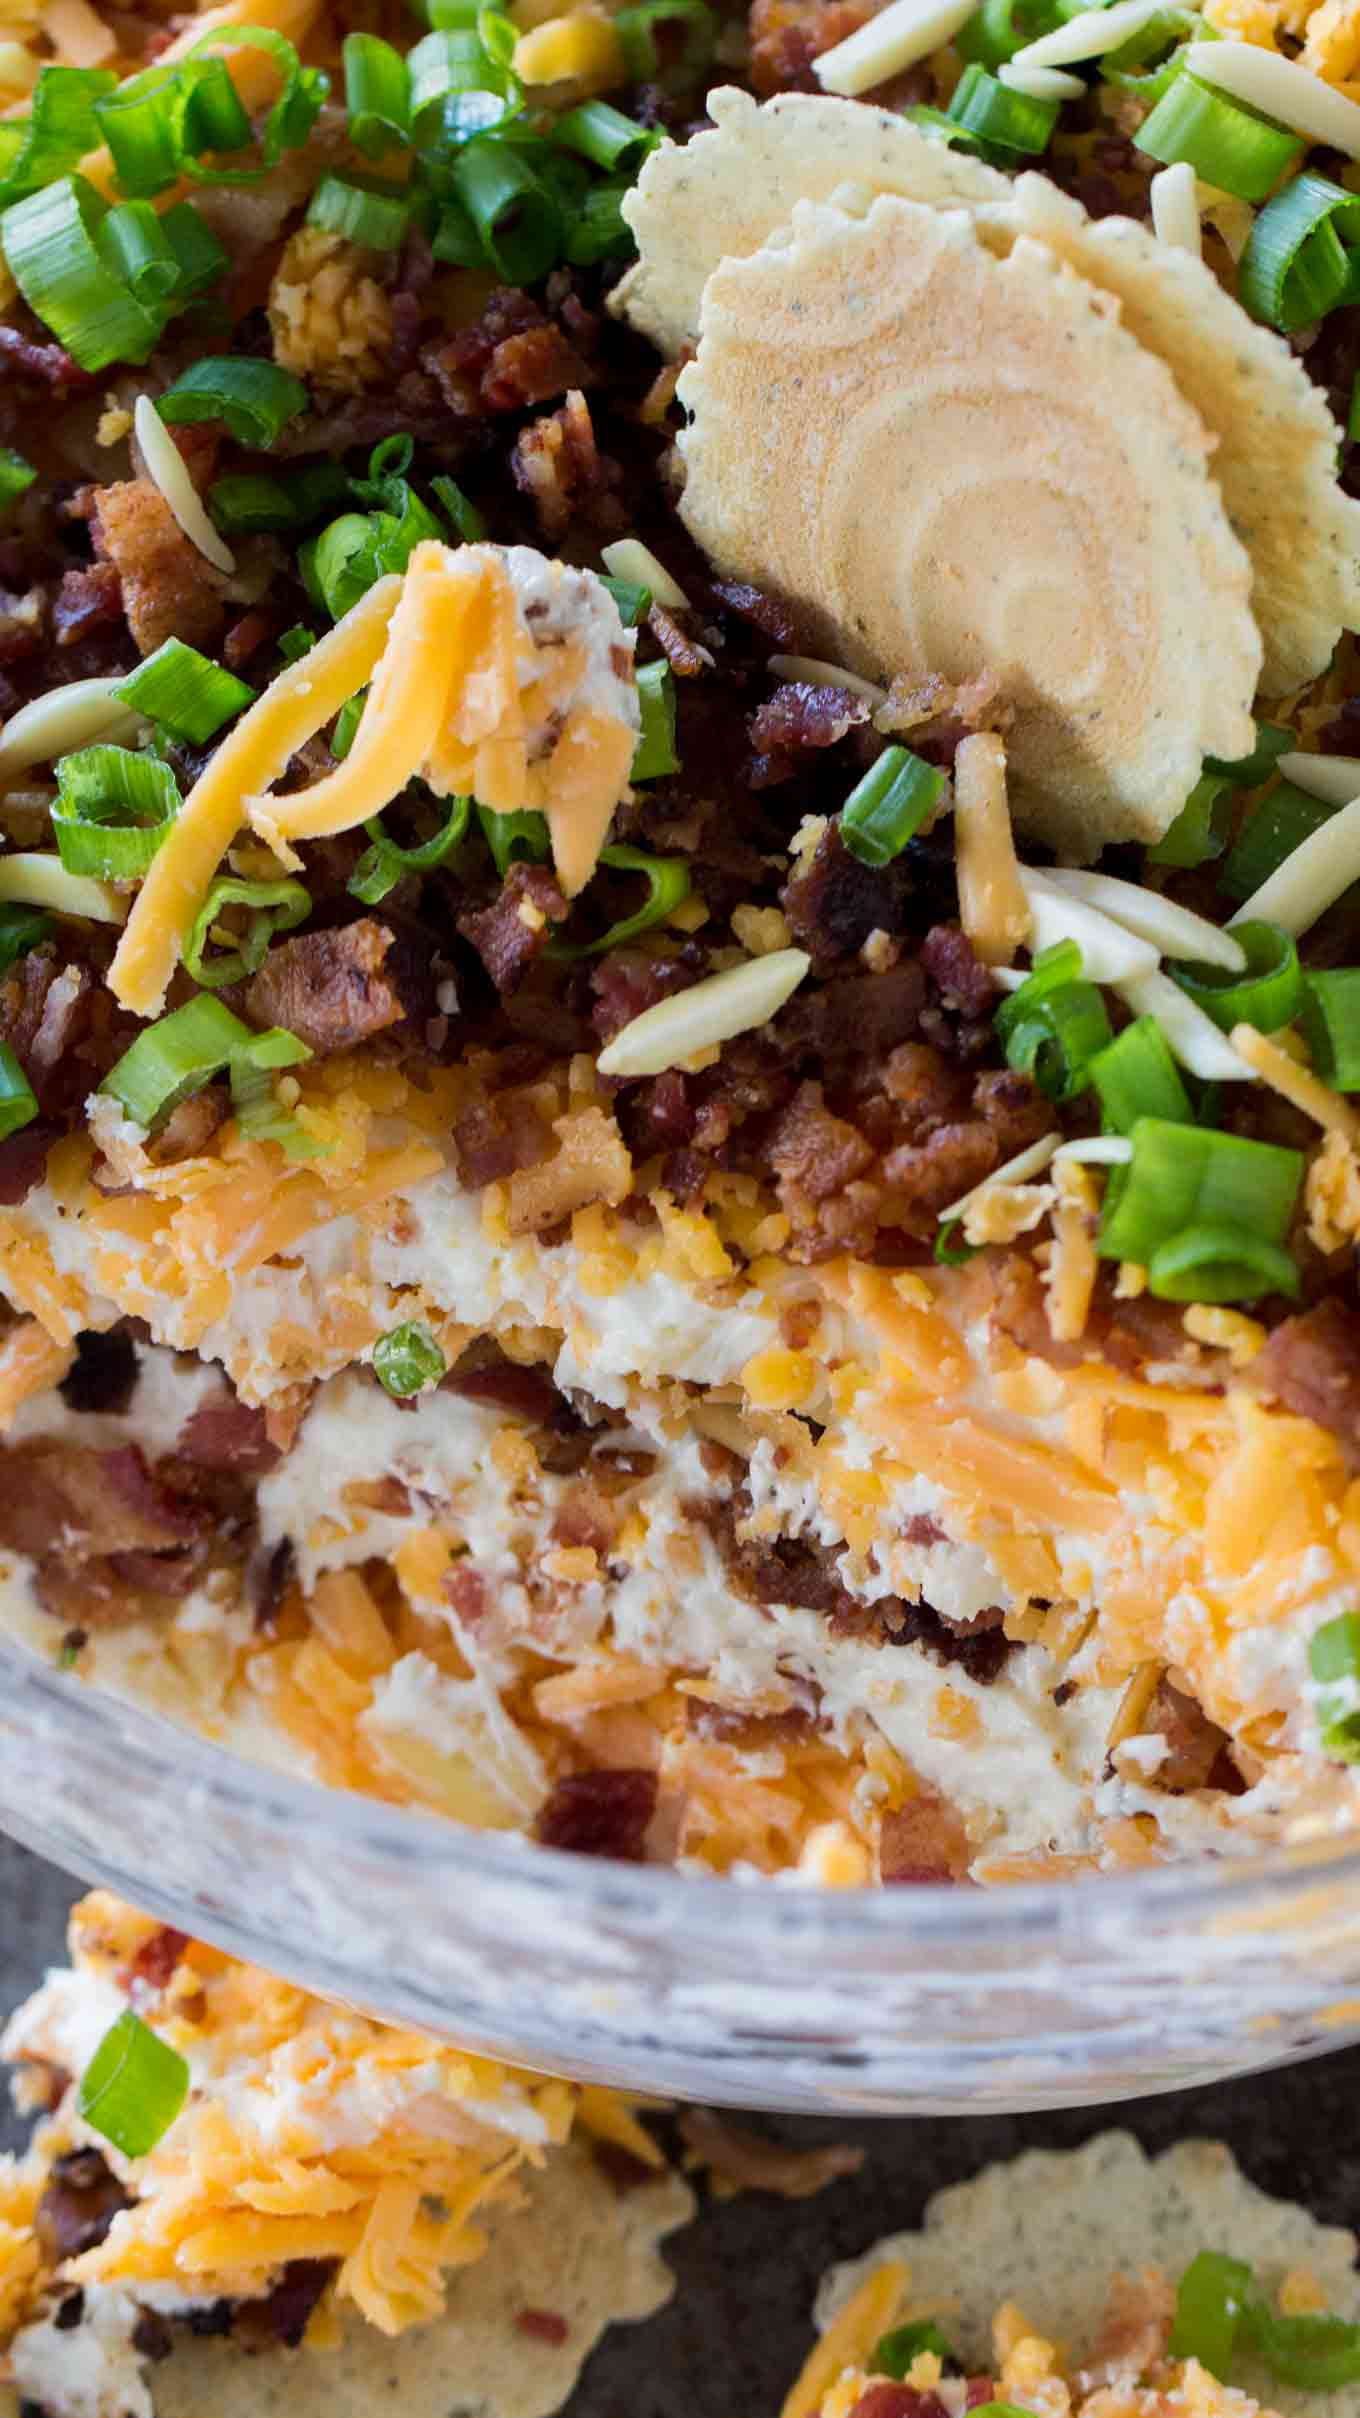 Layered Million Dollar Dip is the best cheese dip that you can make! Layers of creamy cheese, sharp cheddar cheese, bacon, slivered almonds and green onions!